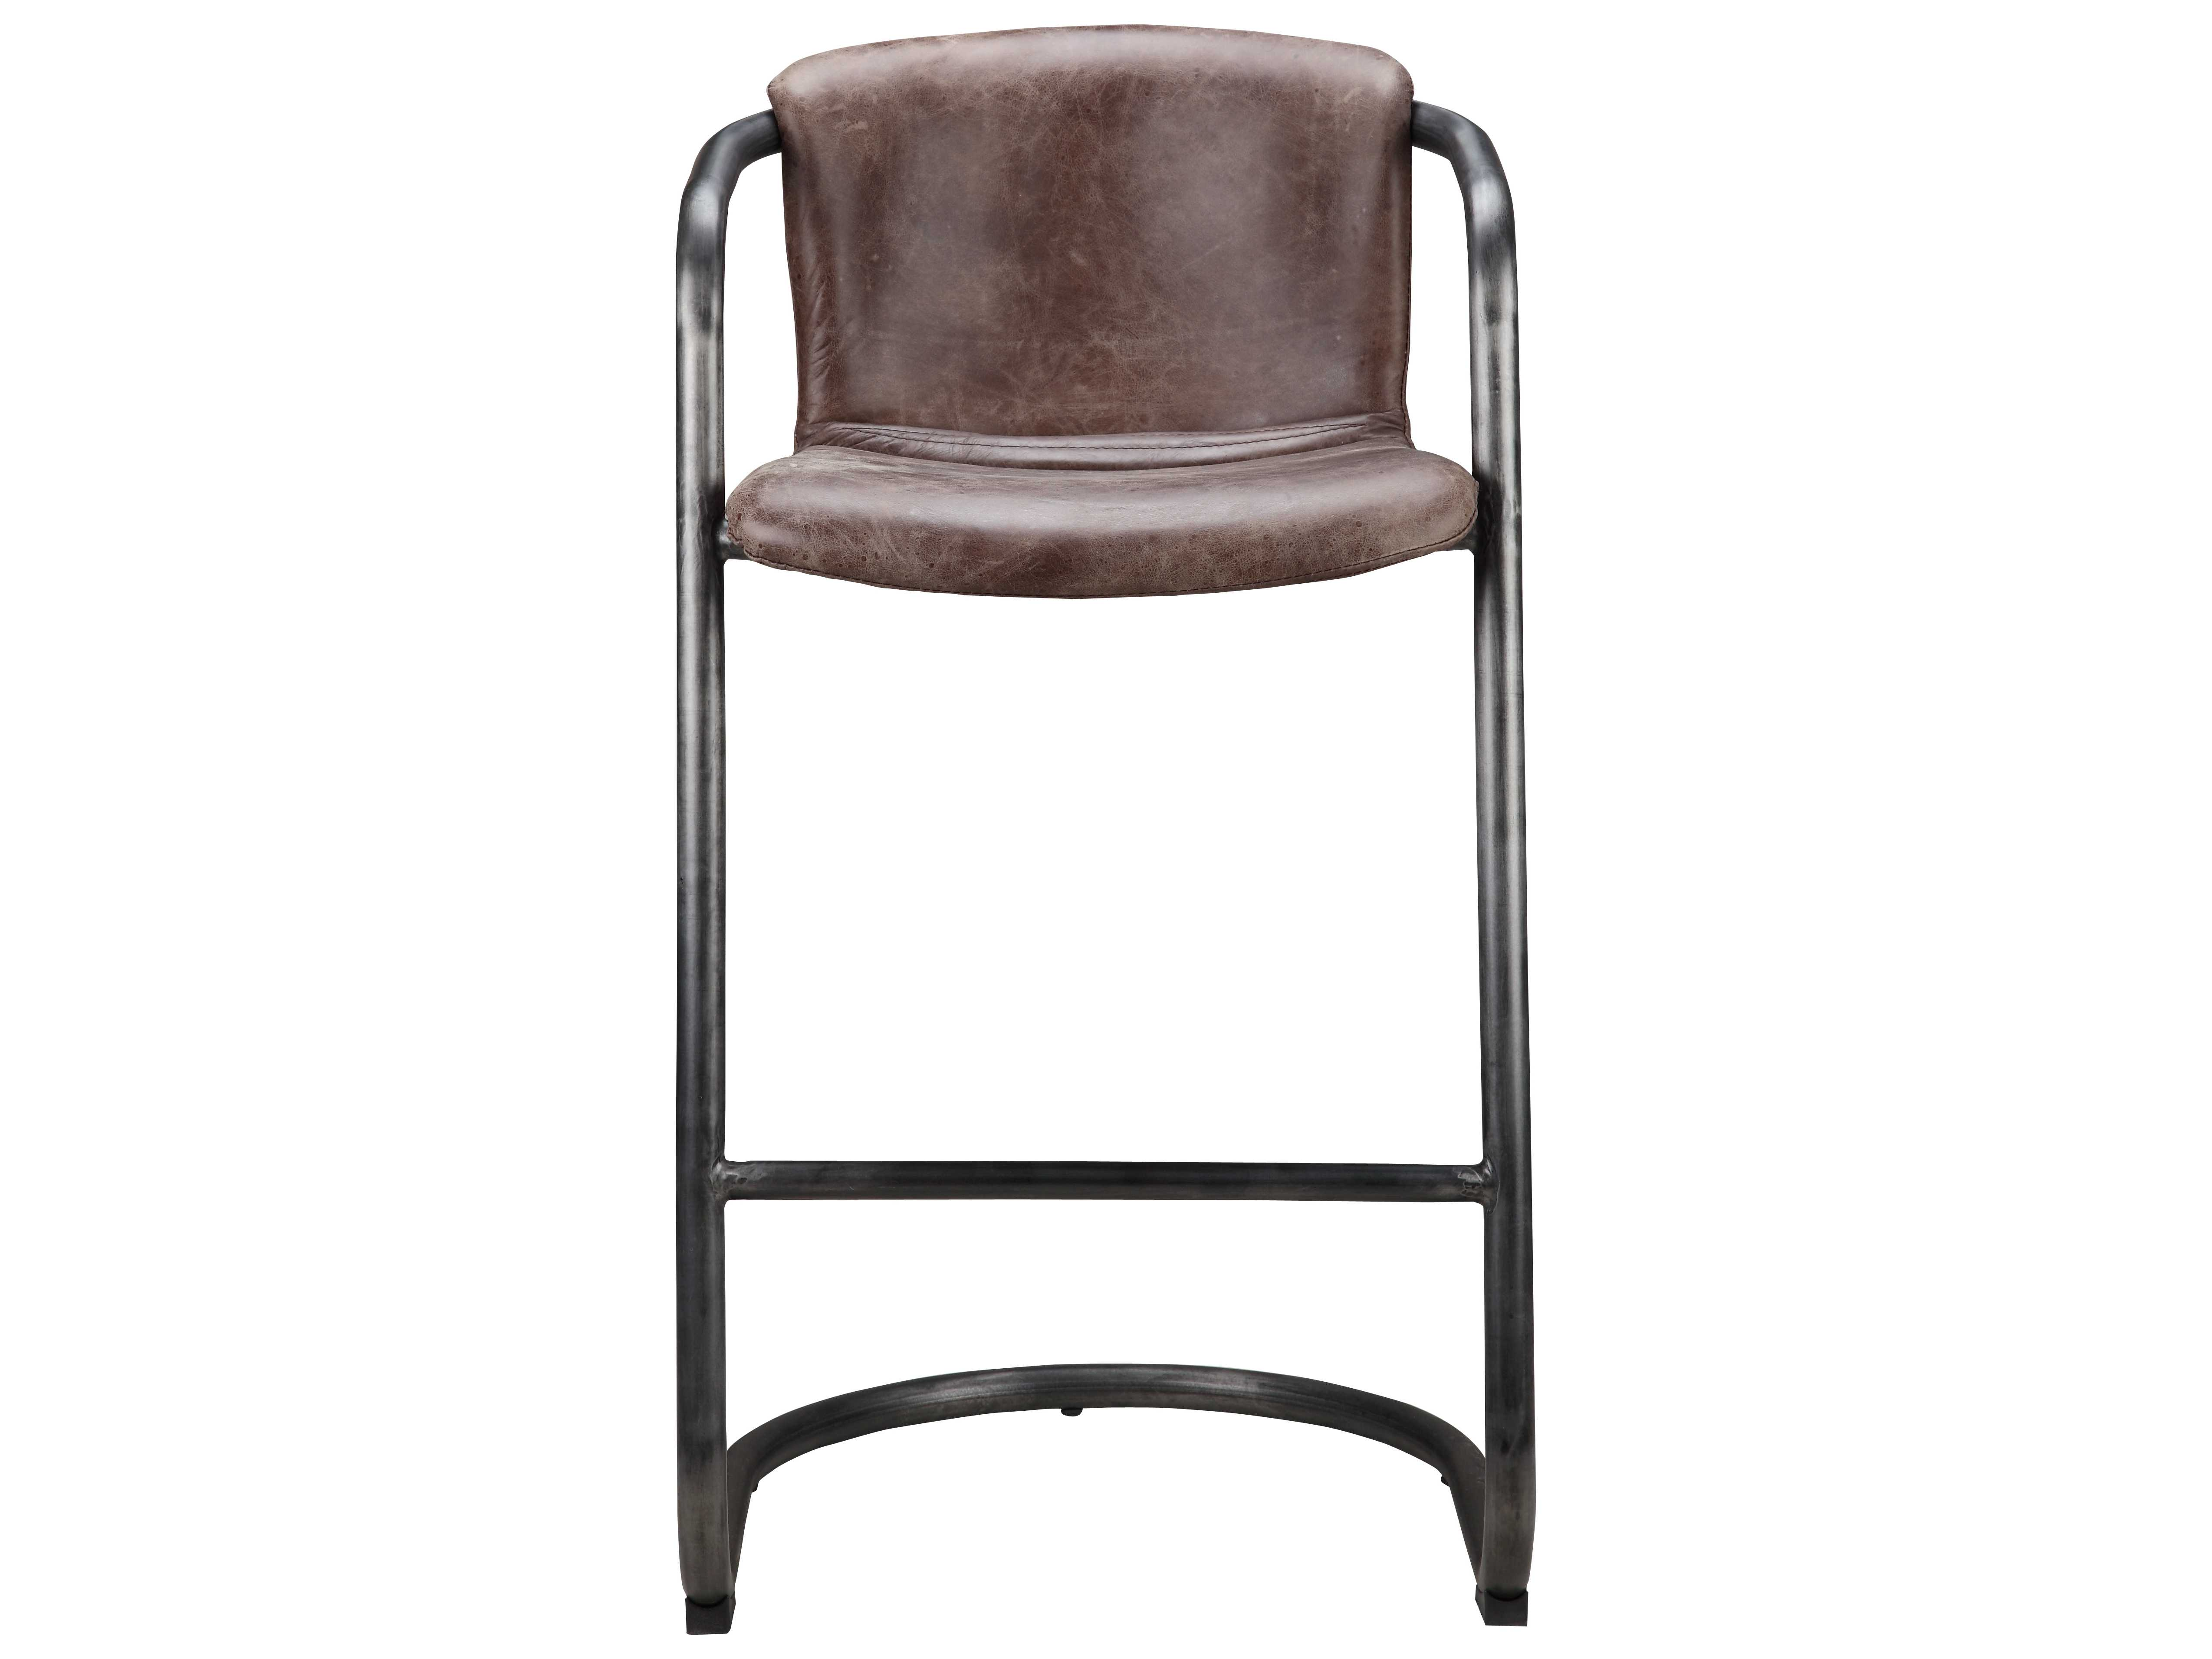 Phenomenal Moes Home Collection Freeman Light Brown Leather Bar Stool Set Of 2 Pdpeps Interior Chair Design Pdpepsorg